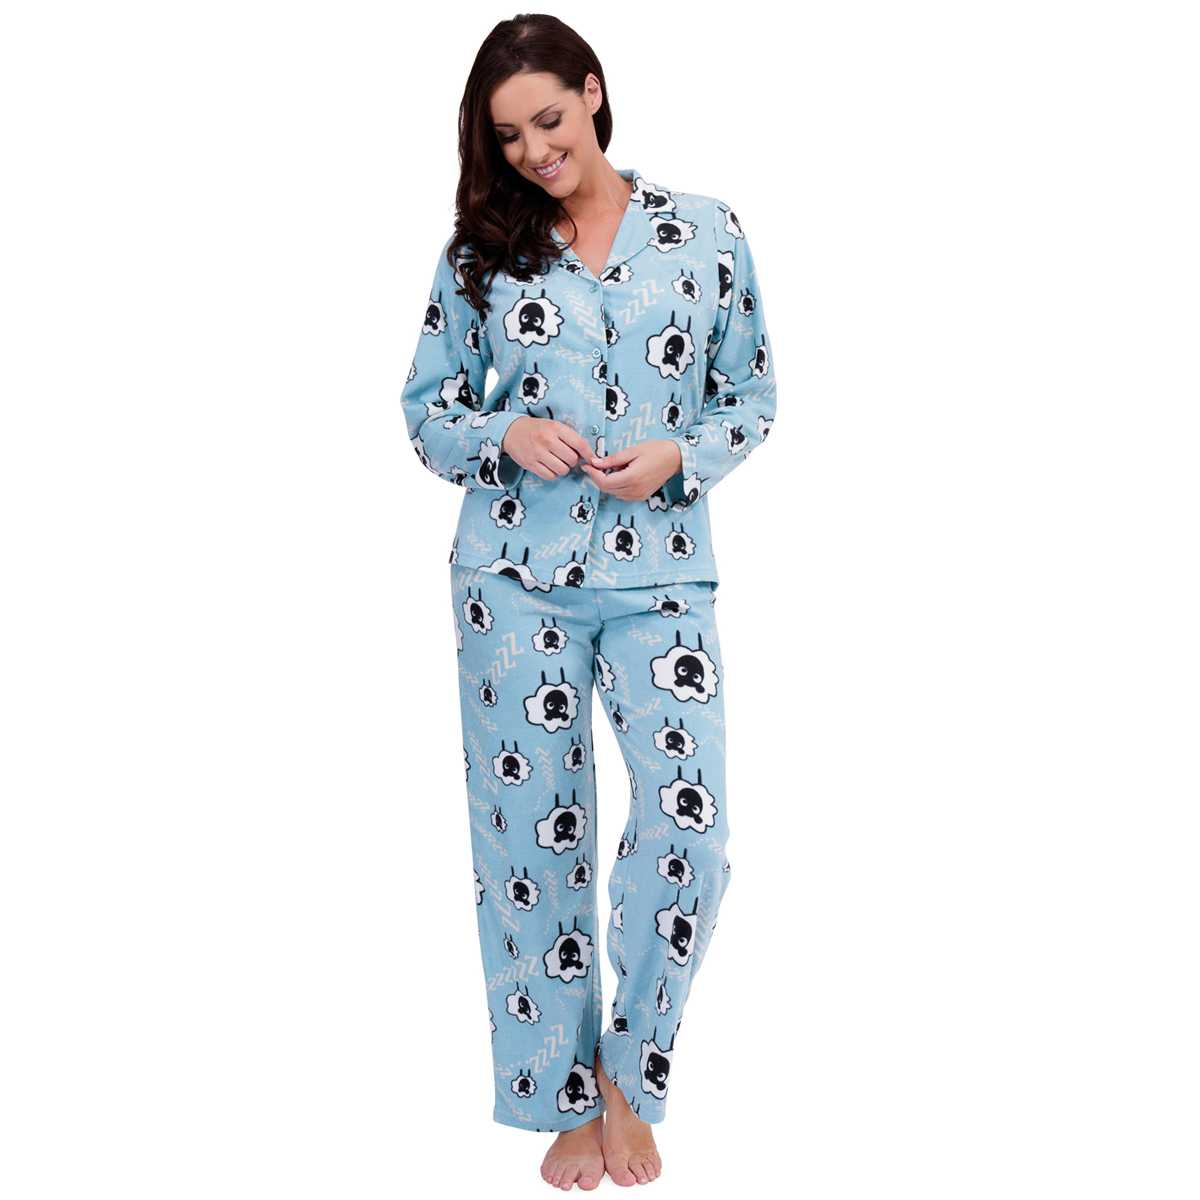 If you love sleeping bundled up, look at women's short sleeve pajama sets in silk and satin. For chilly weather, browse long sleeve flannel styles so you can stay cozy. Try a set or mix-and-match pajama tops and bottoms to create a cute and cozy style of your own.